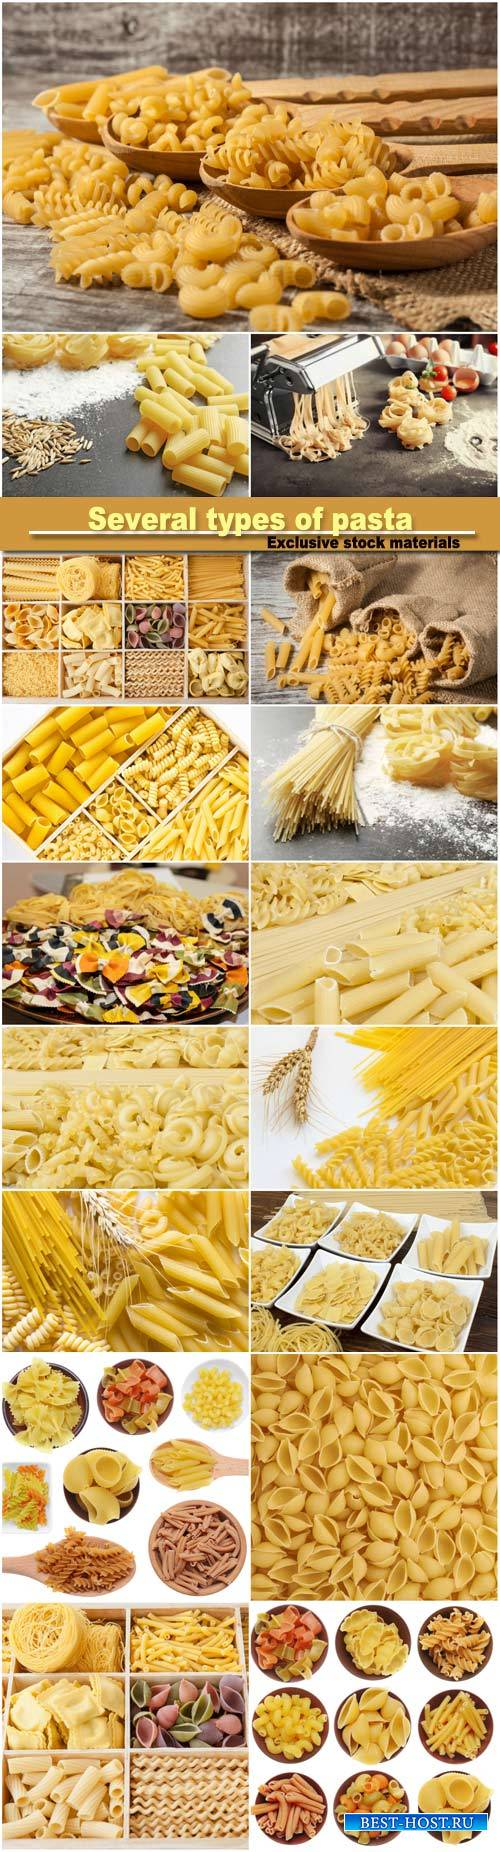 Several types of pasta, spikelets of wheat